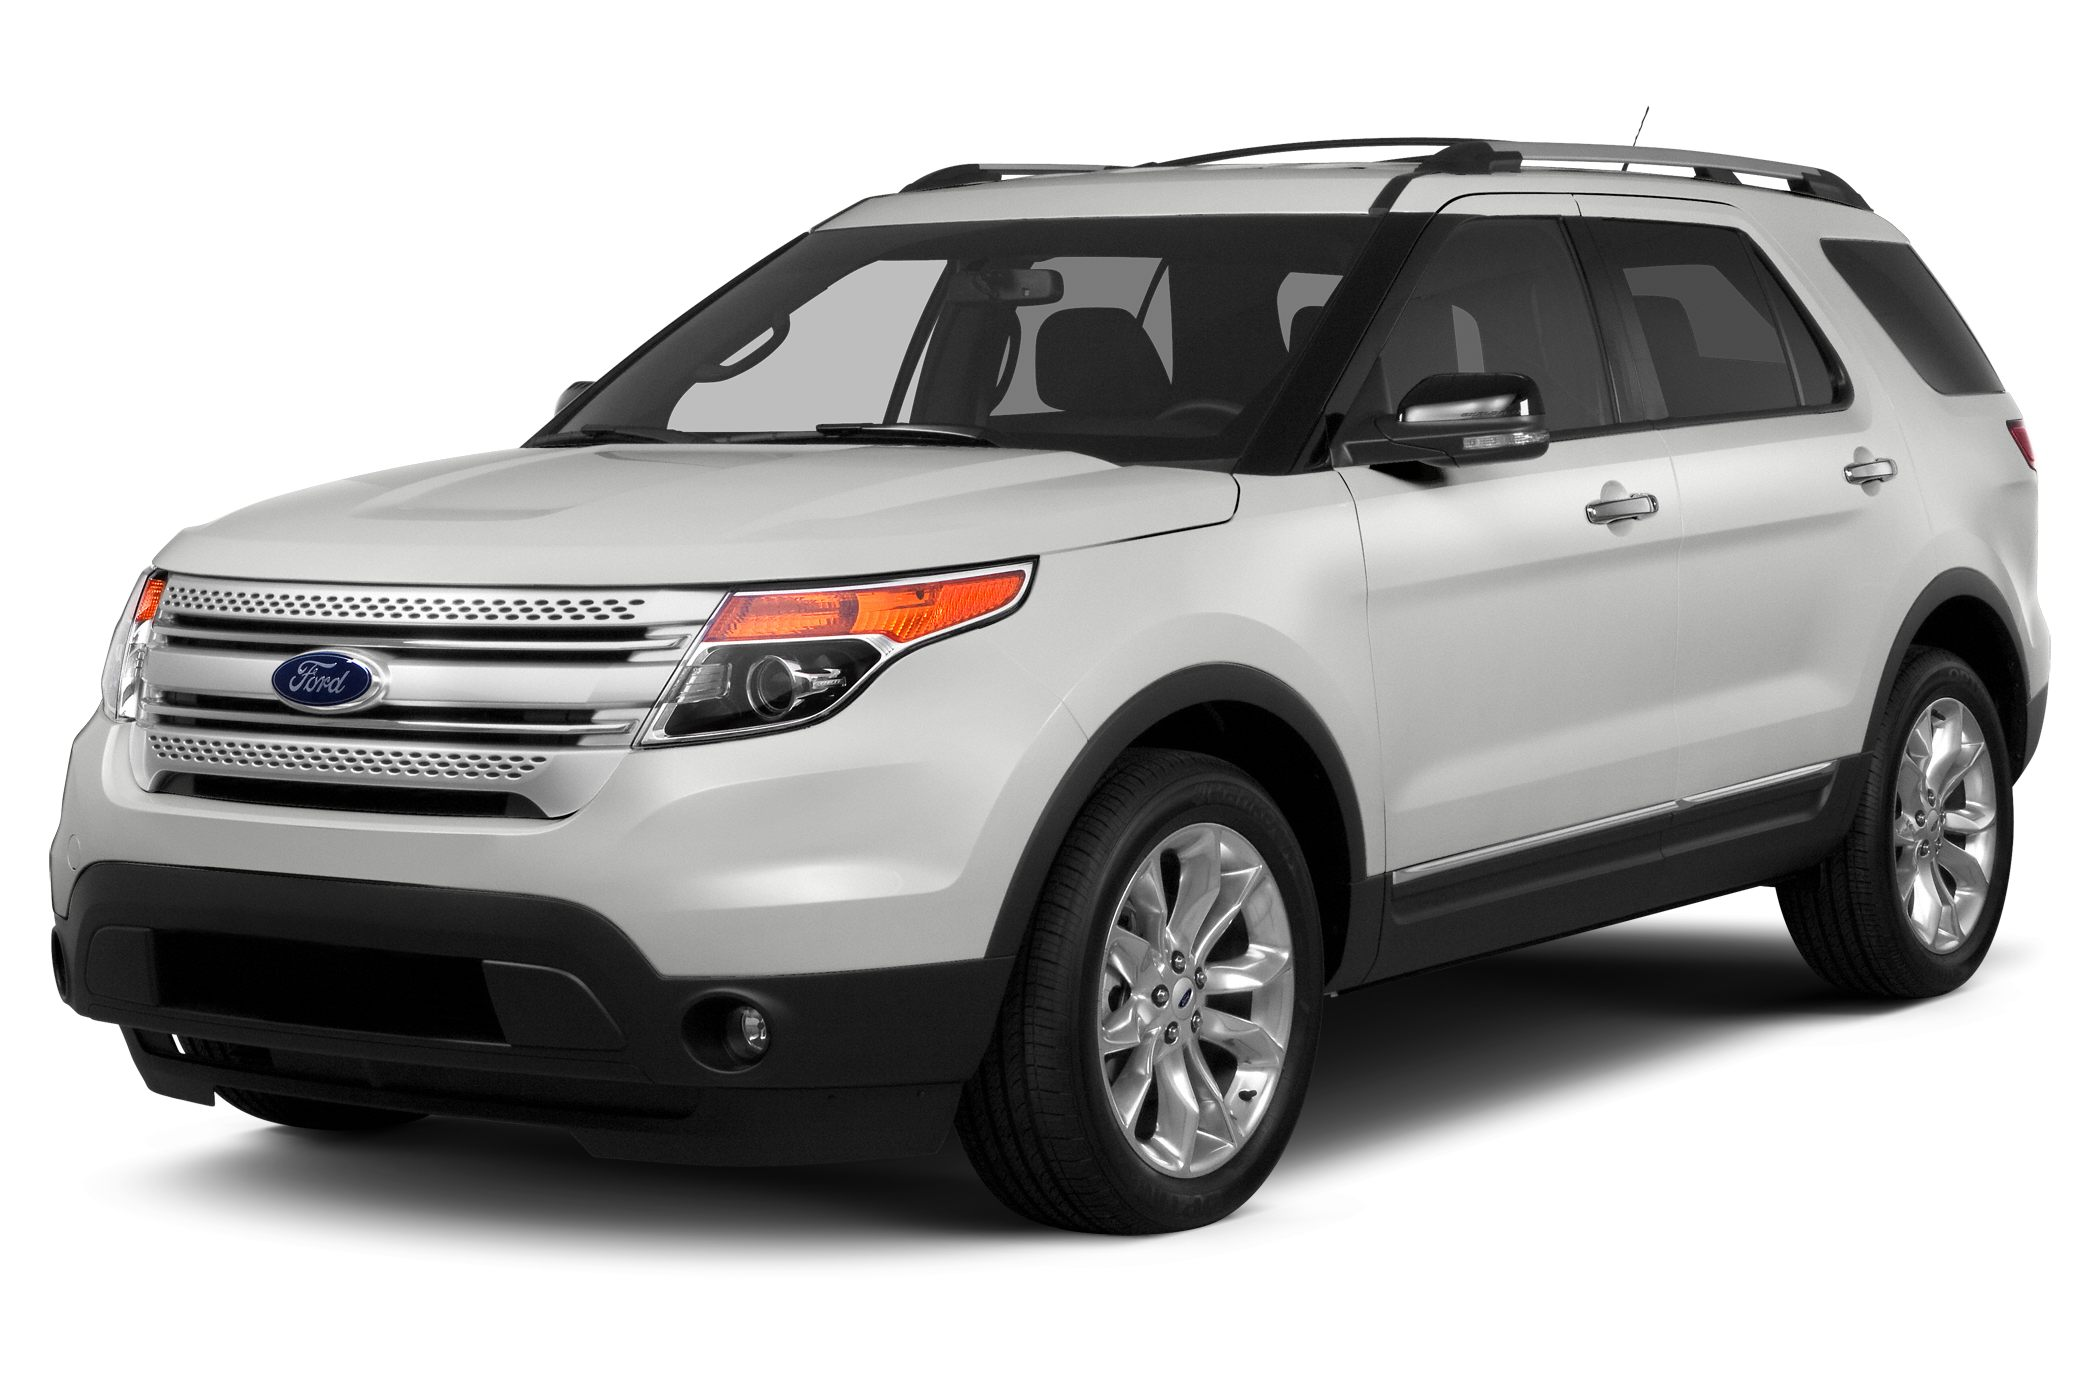 2015 Ford Explorer Base SUV for sale in Philadelphia for $33,985 with 6 miles.